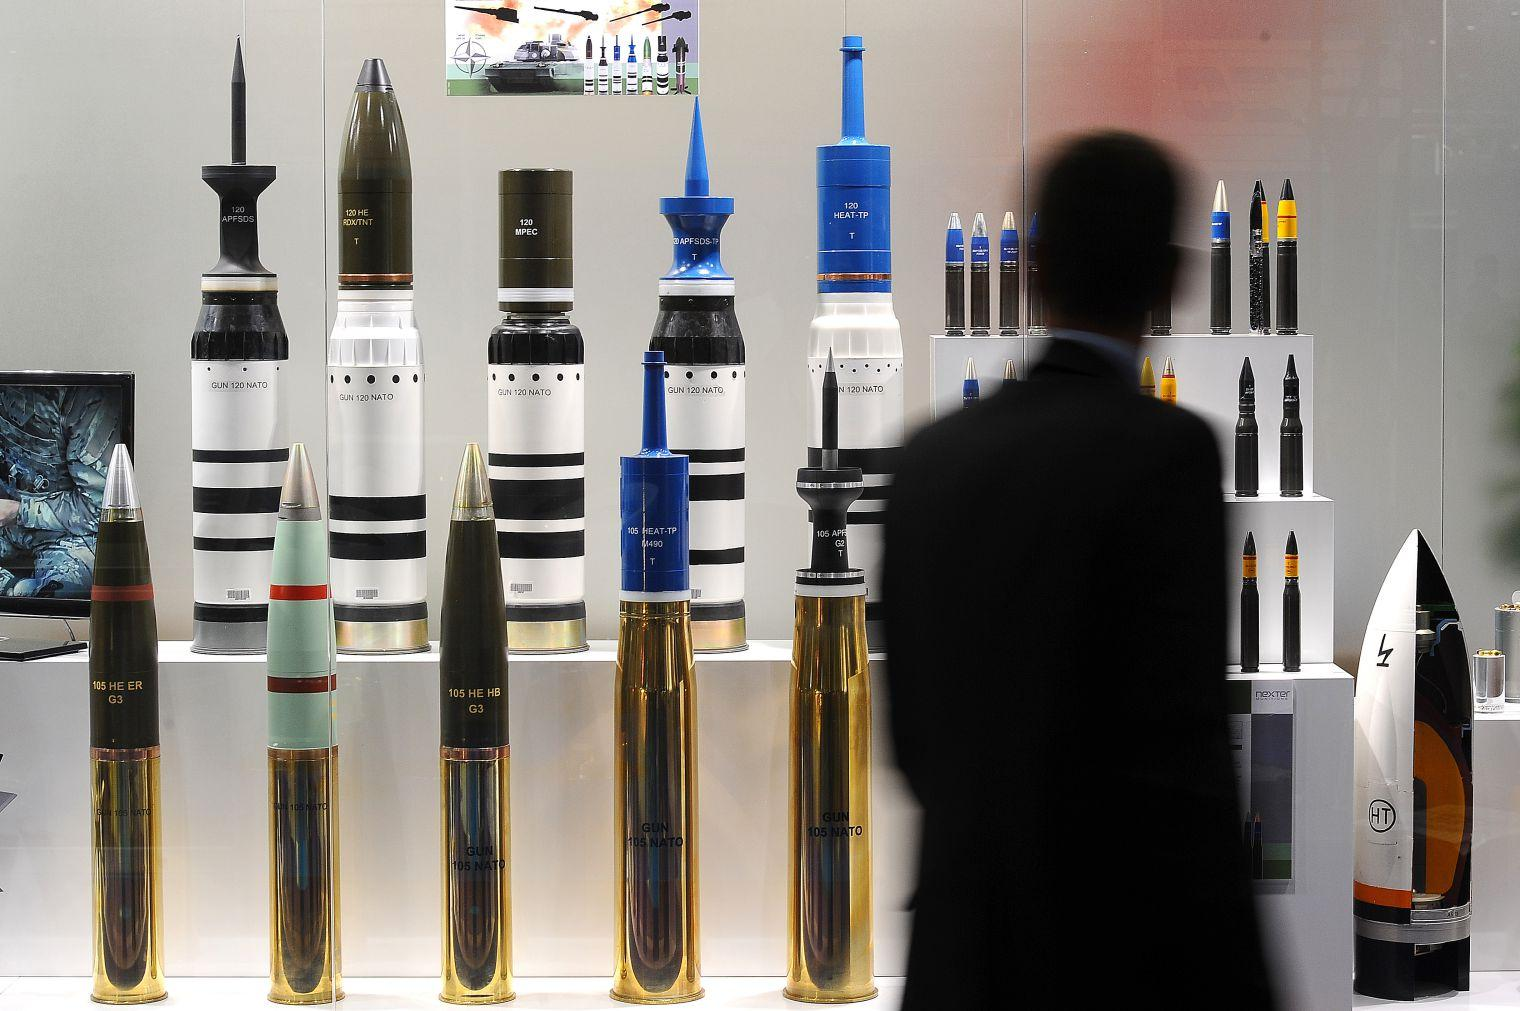 The world's 10 biggest arms exporters and importers | indy100